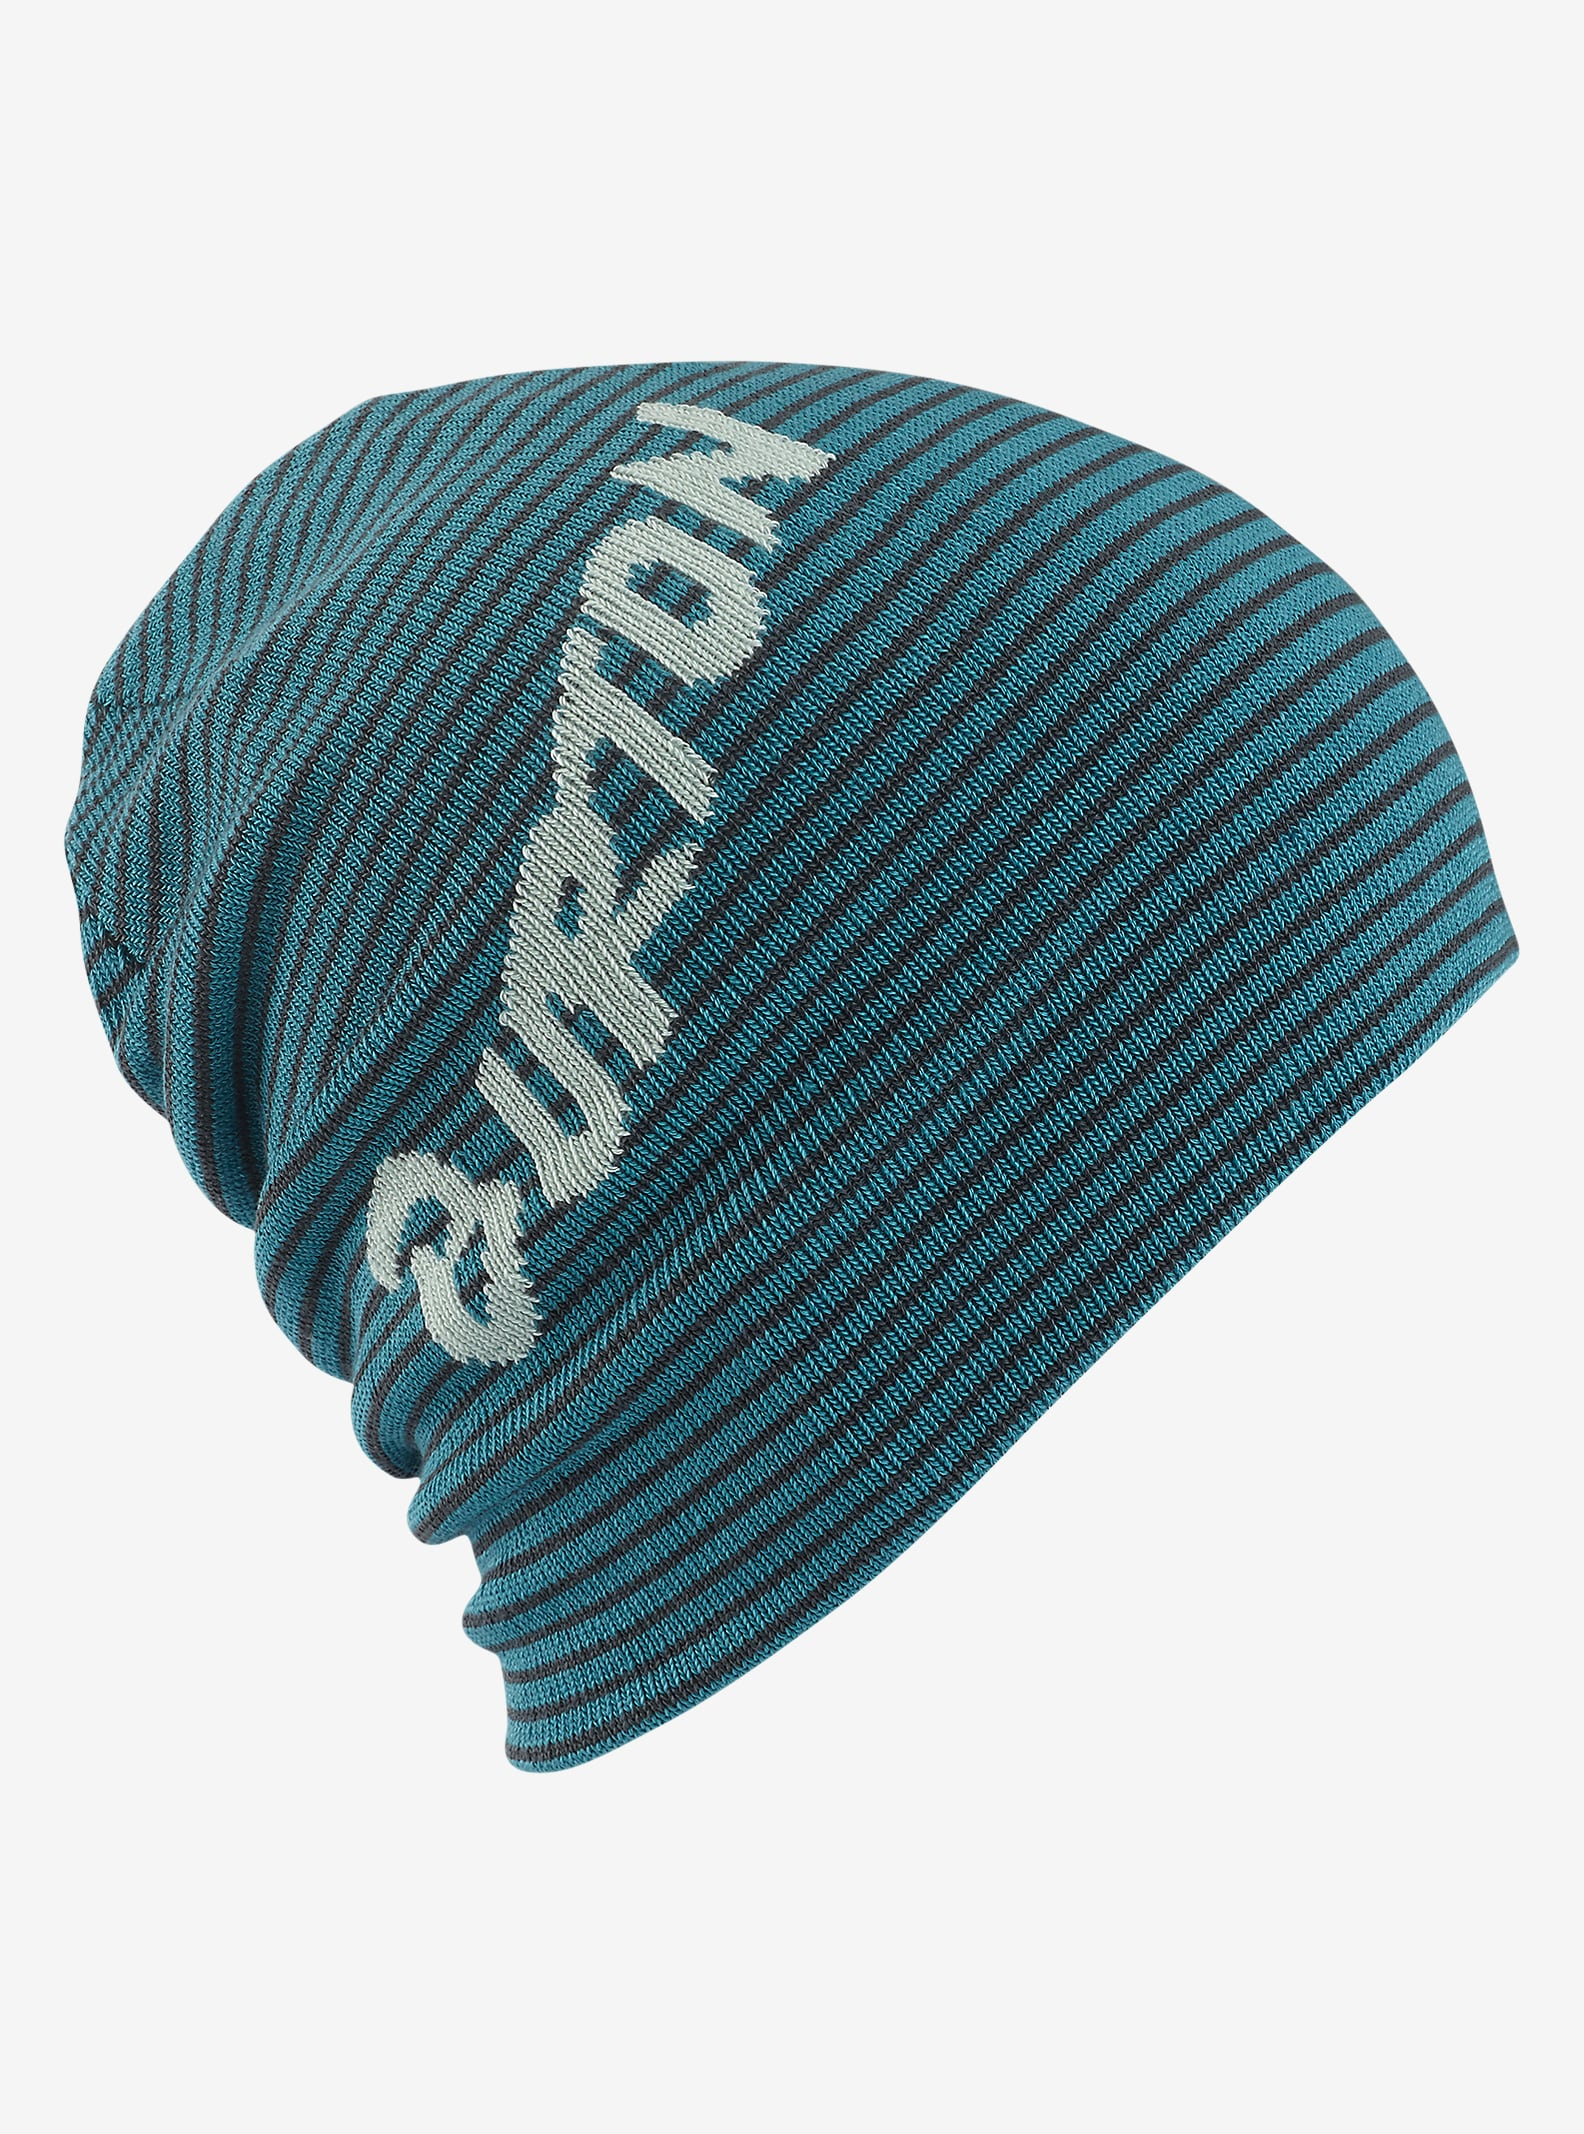 Burton Marquee Reversible Beanie shown in Larkspur / Faded